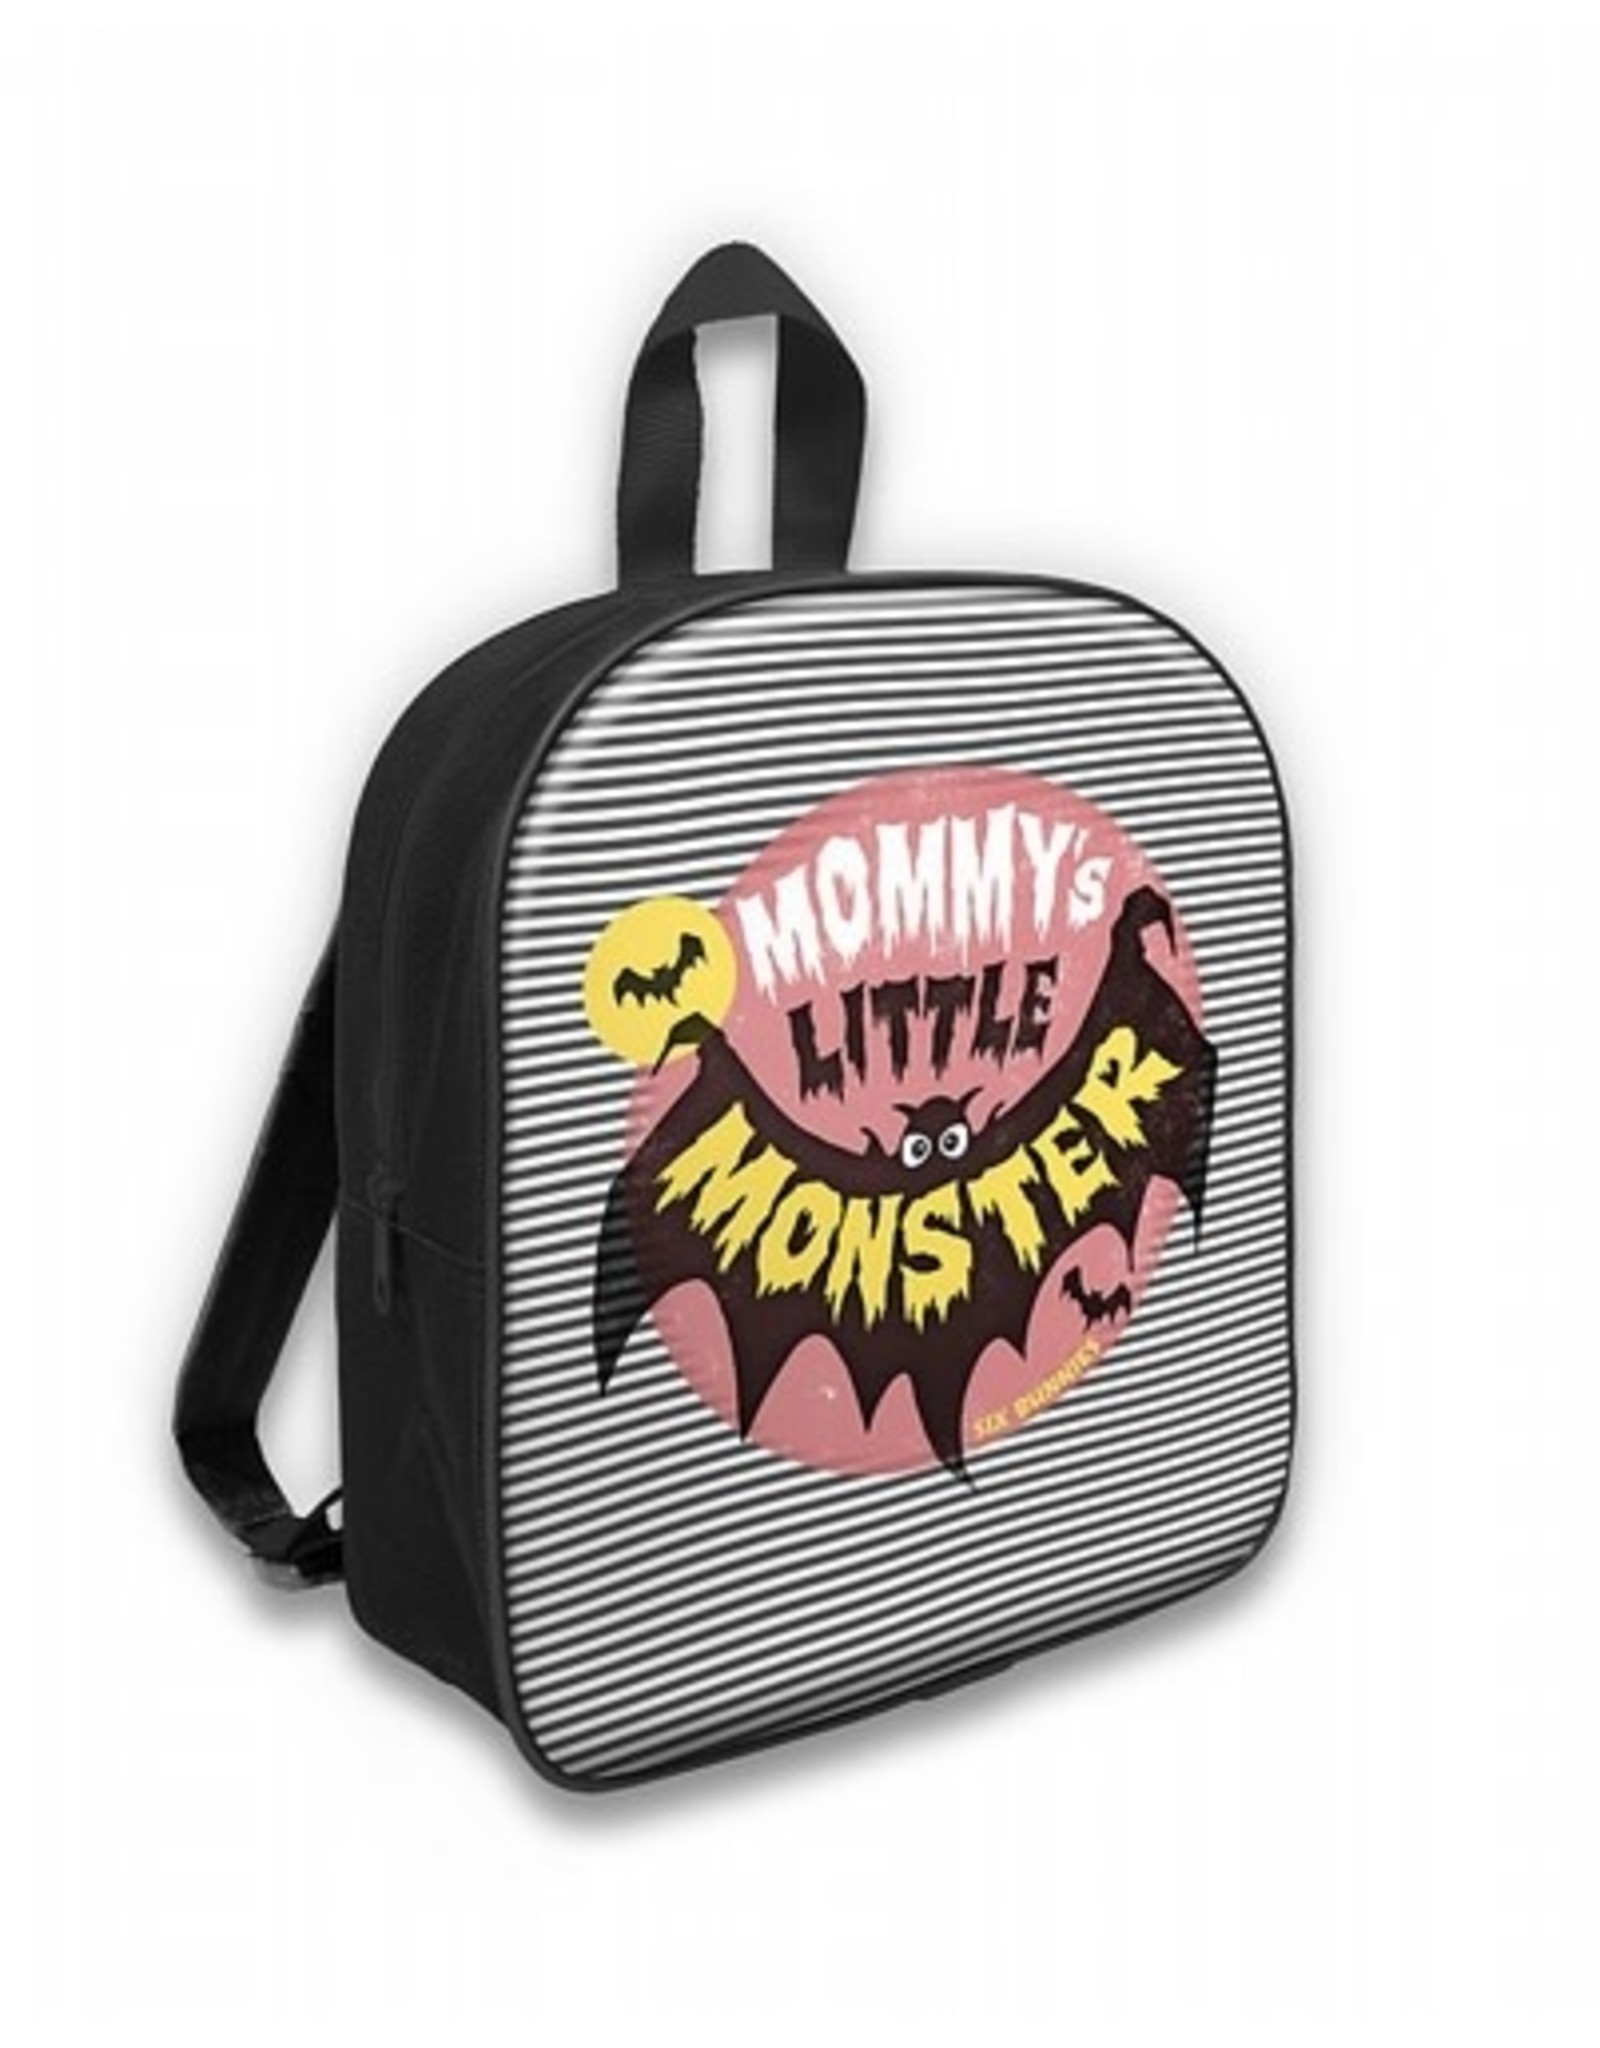 SIX BUNNIES - Mommy's Monster Striped Backpack